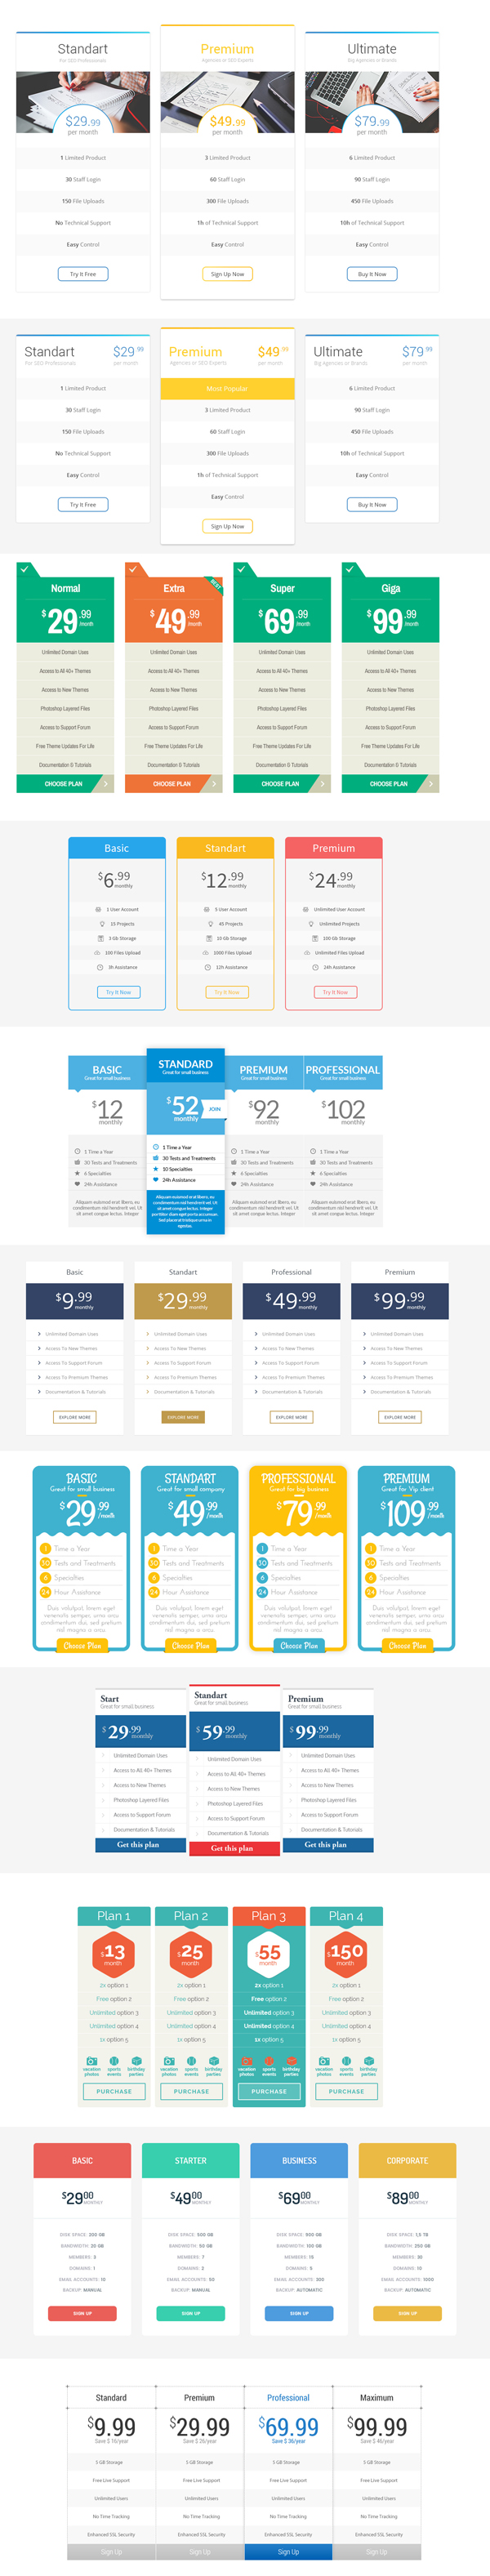 Free Pricing Tables 12 Designs PSD Template